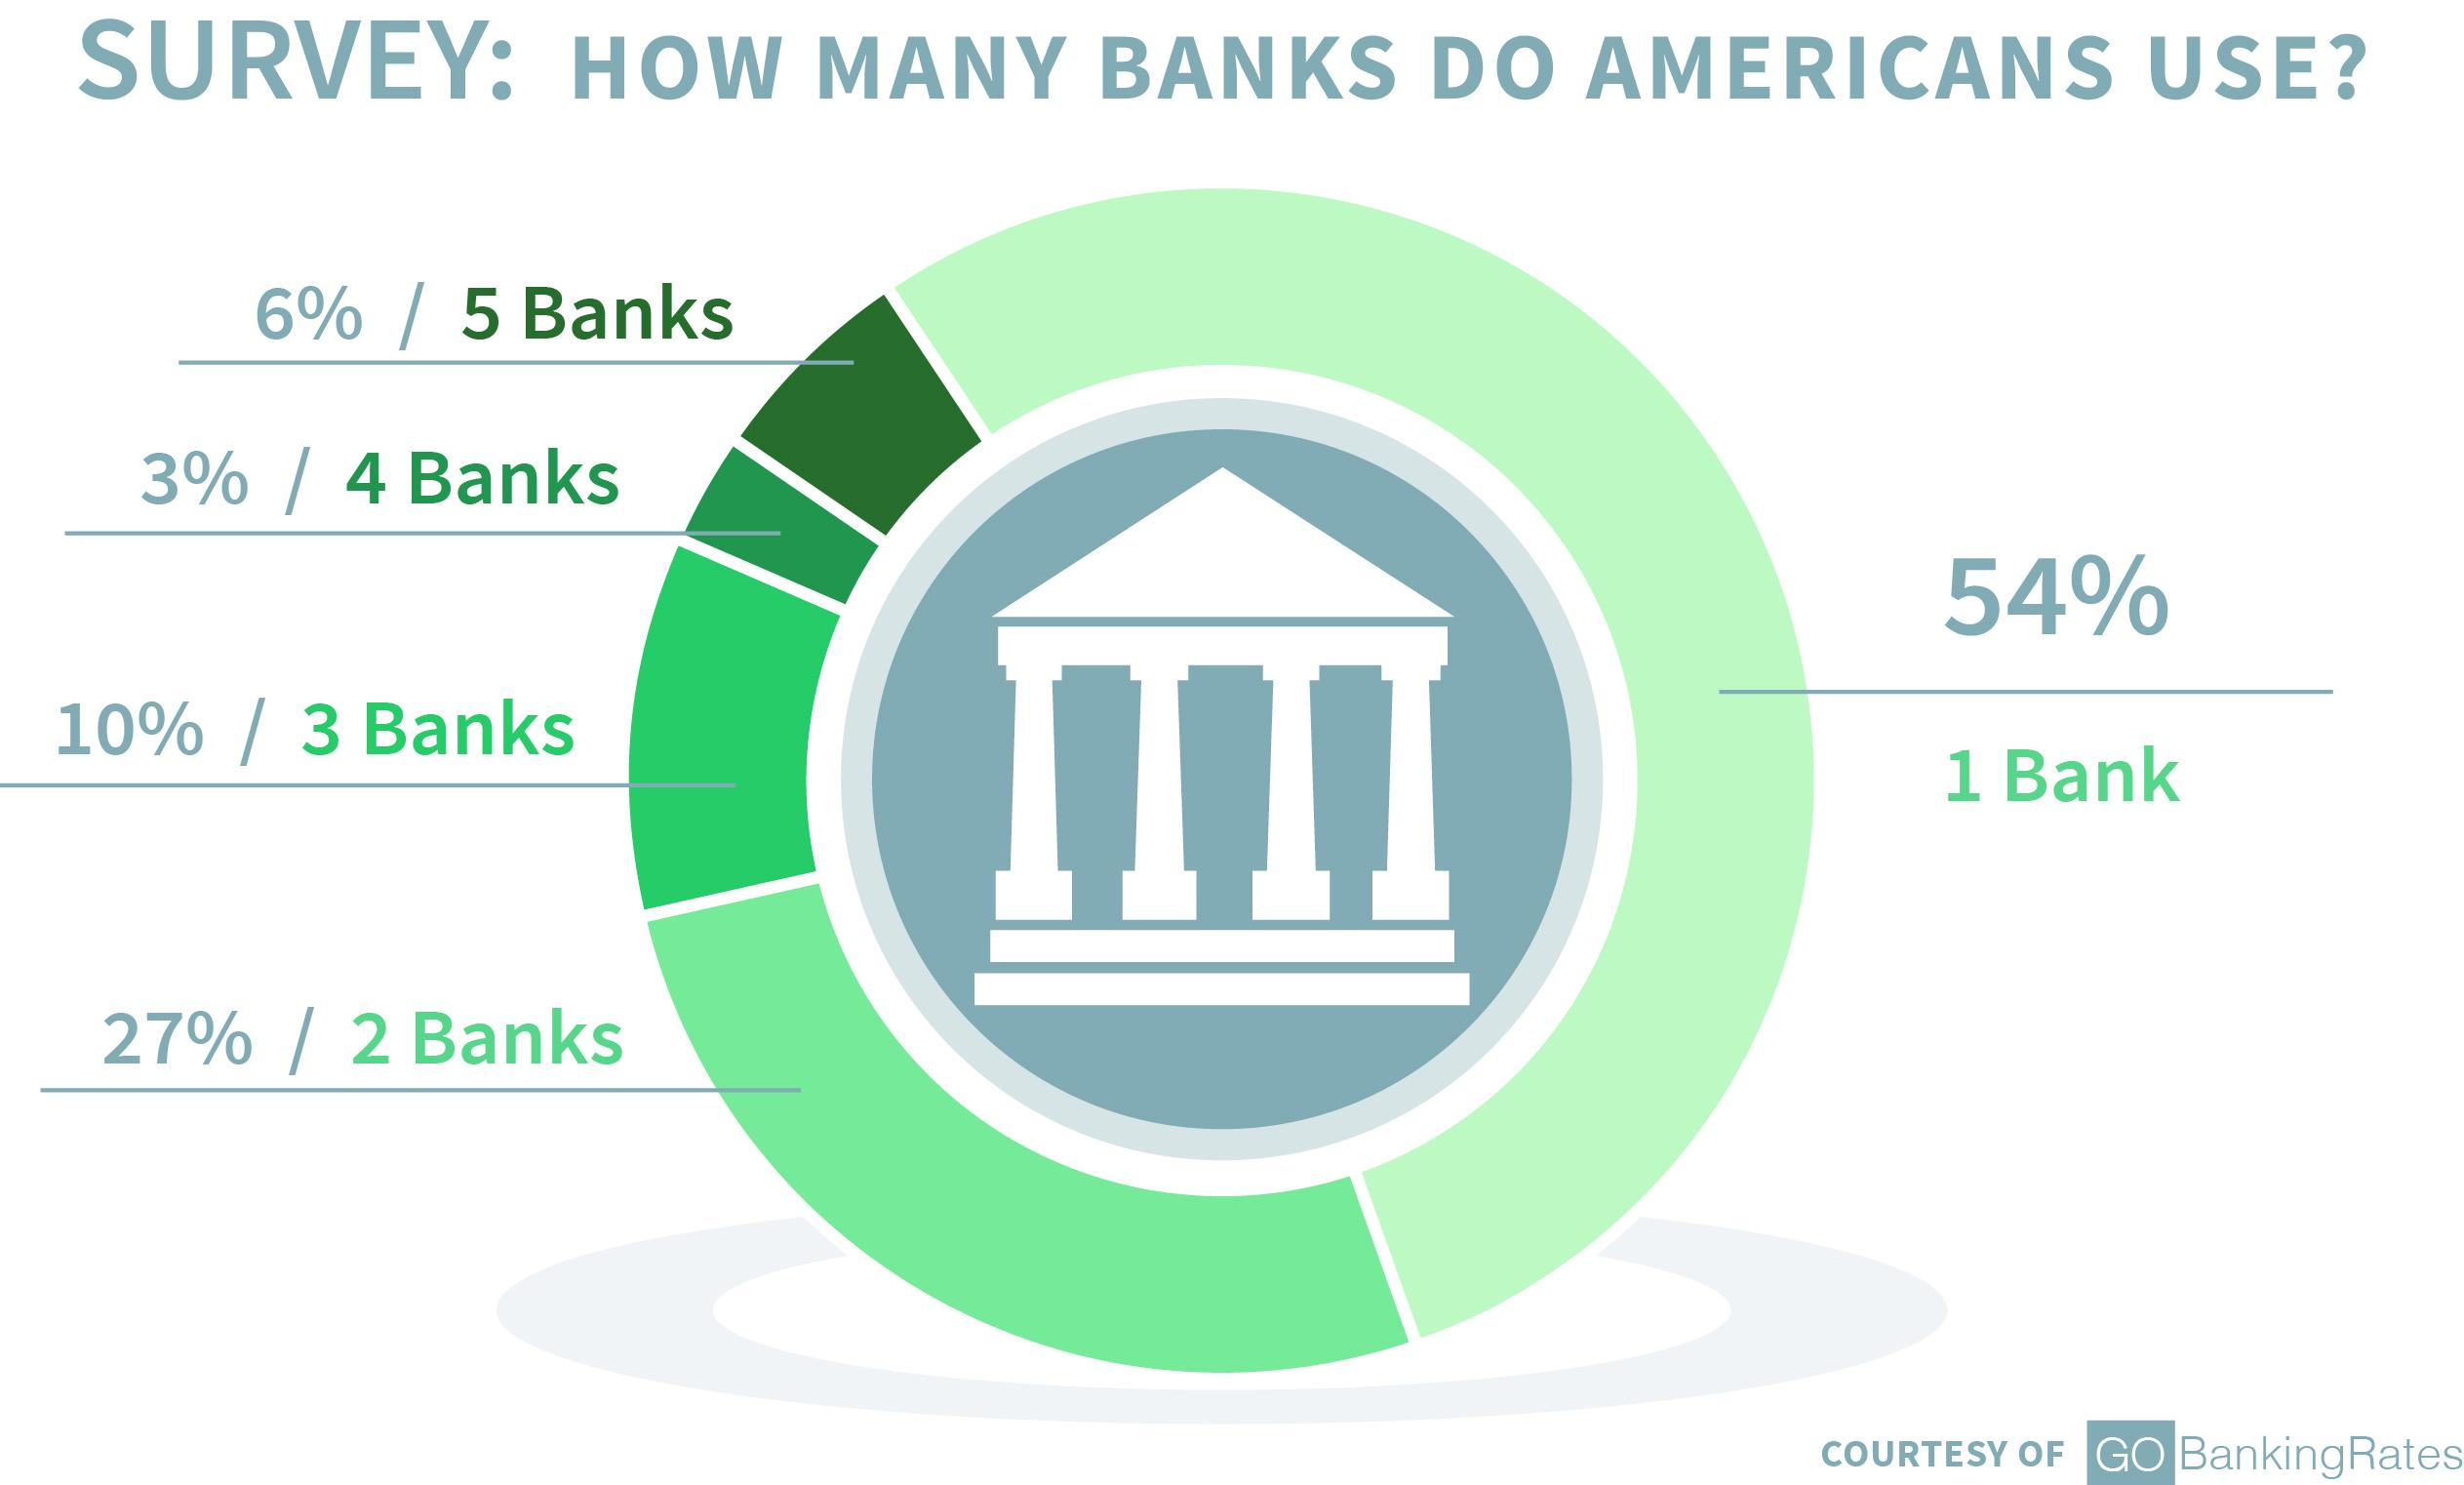 Survey: How Many Banks Do Americans Use?